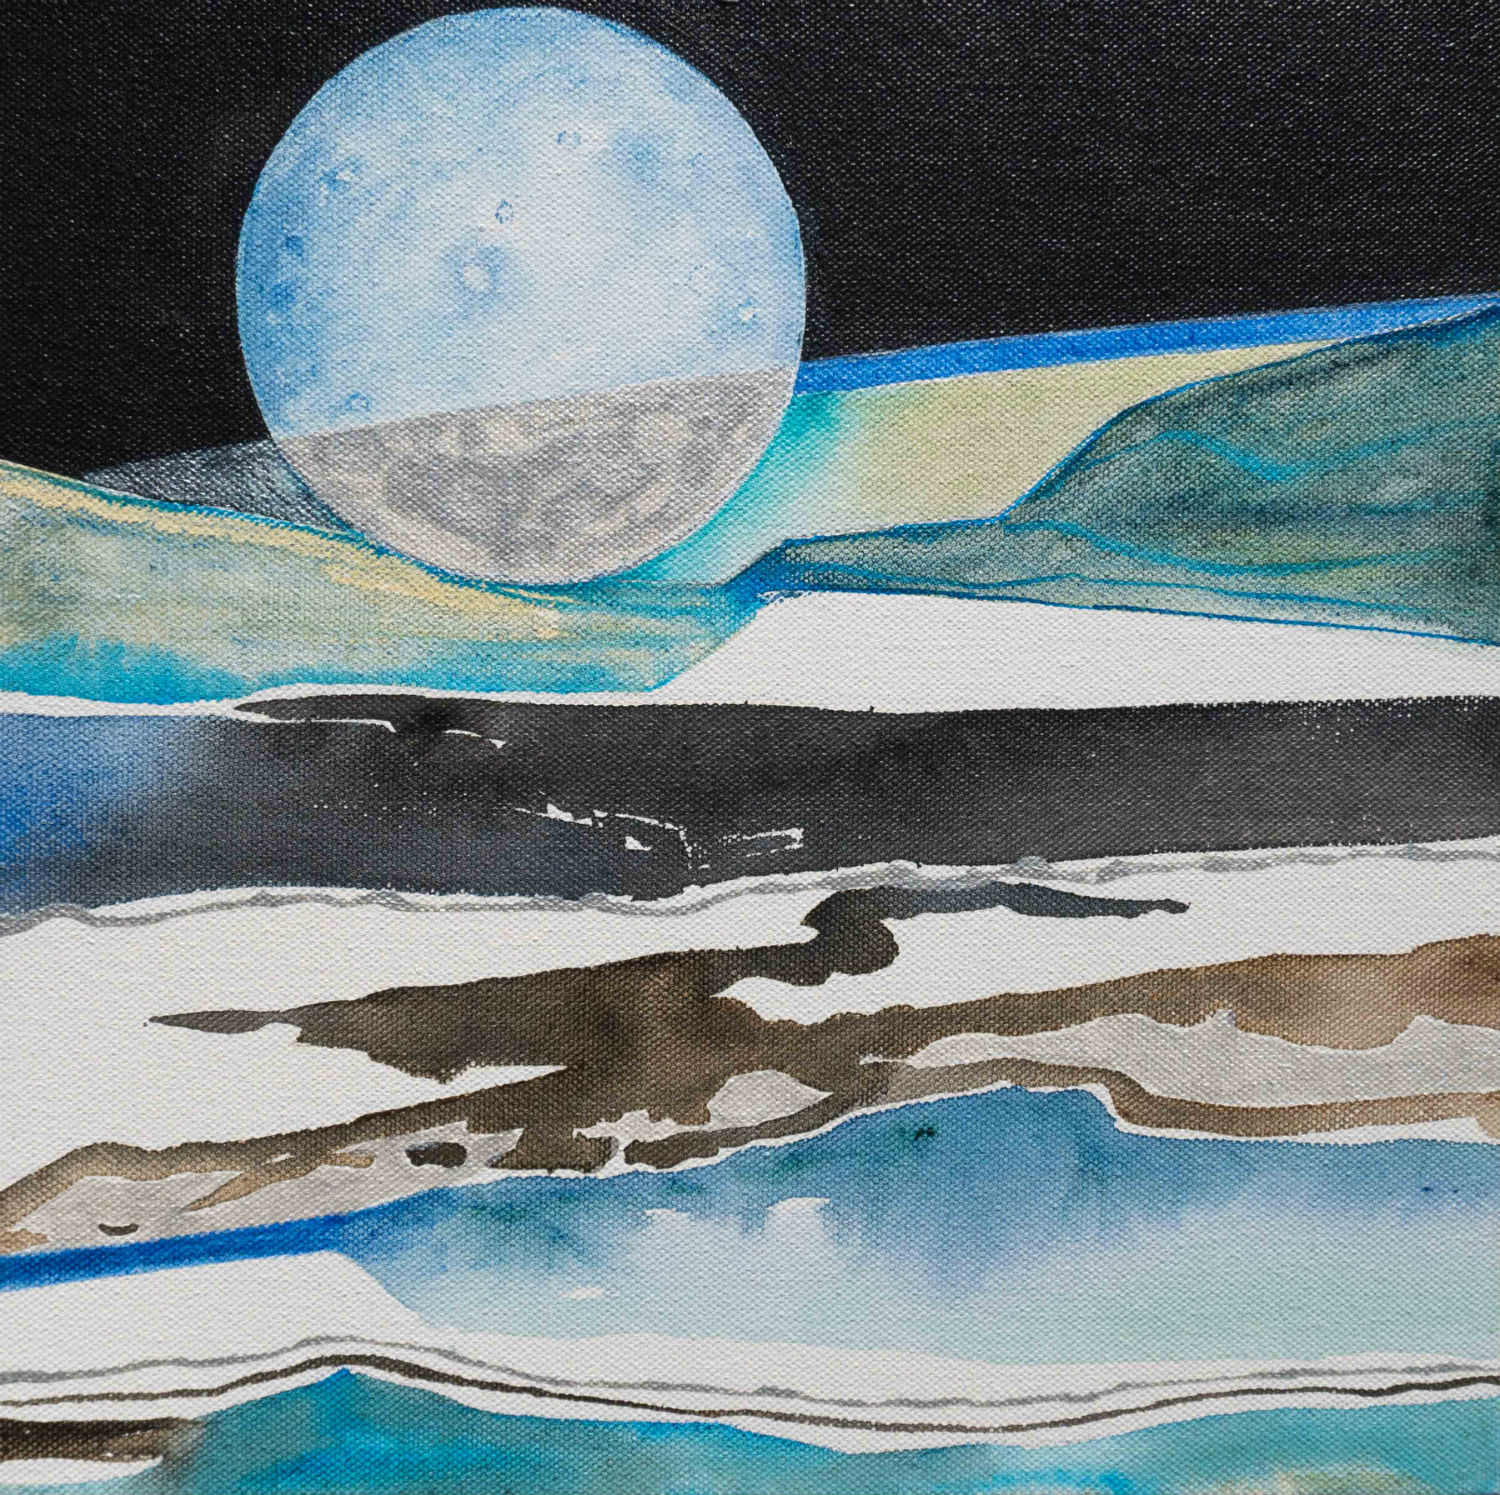 No.2 in the Moonscape Series